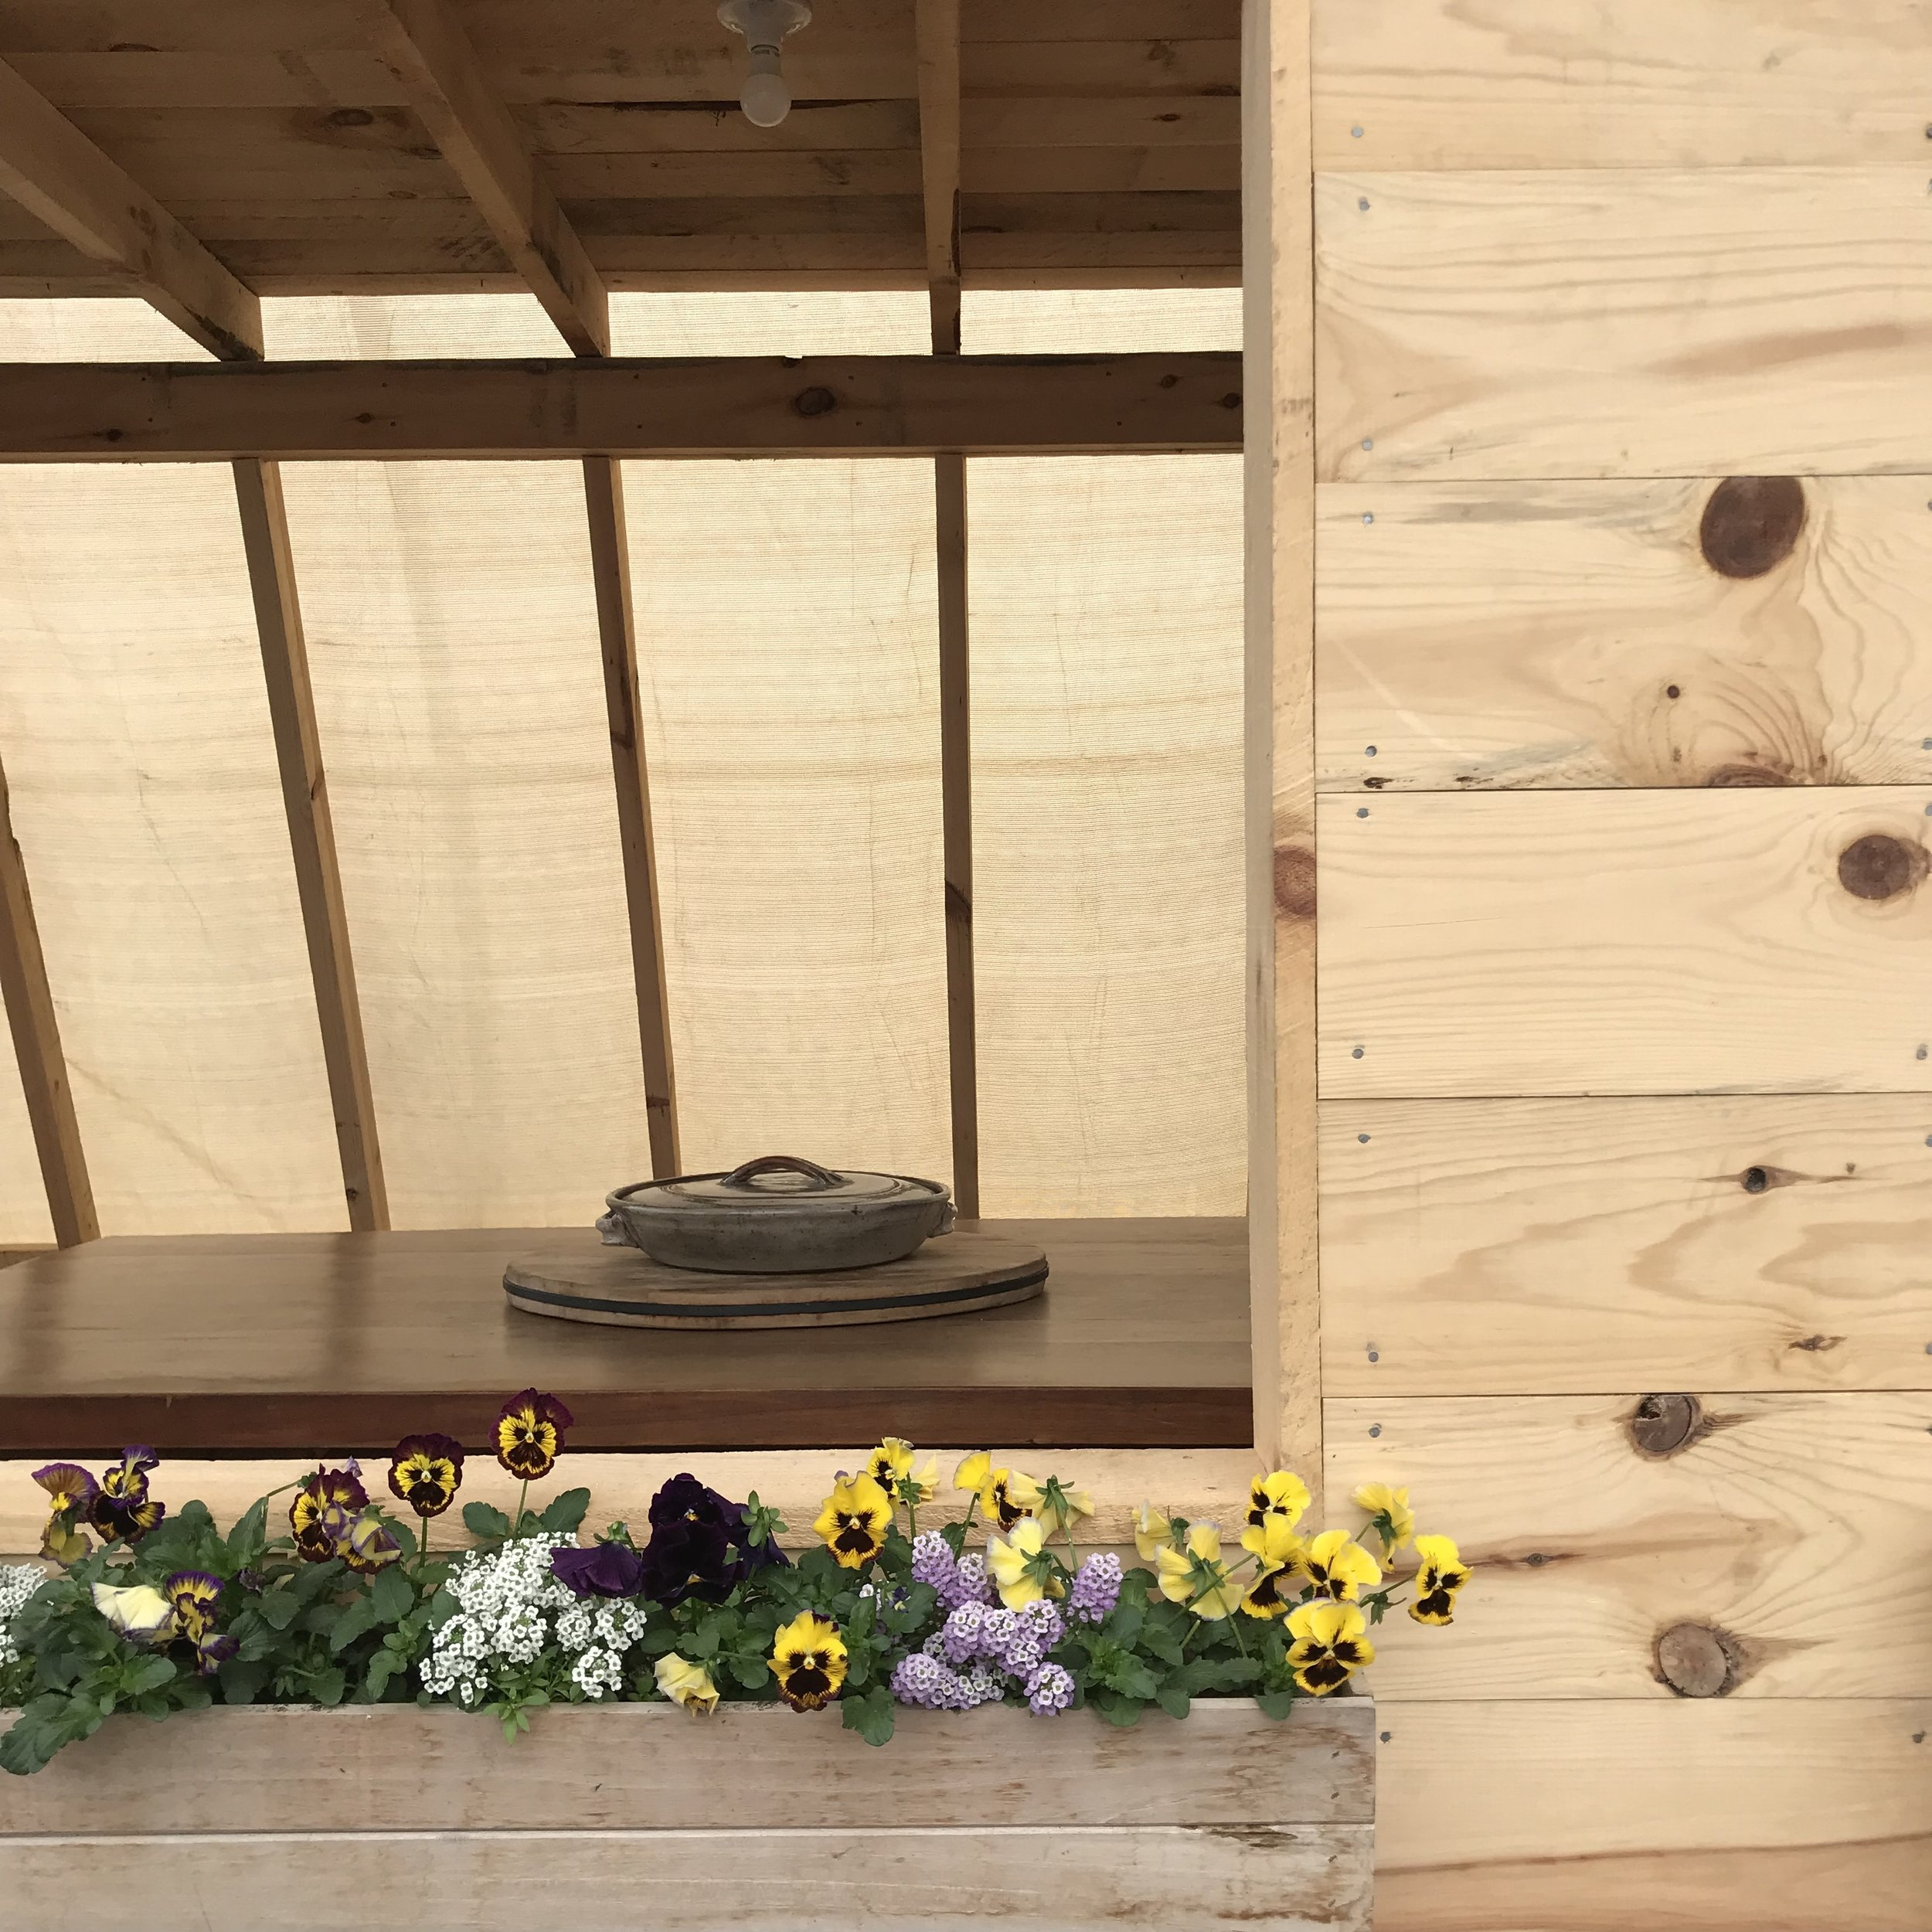 Welcoming space - The structure was created as a classroom for our gardening and cooking workshops and we are delighted to share it with you!